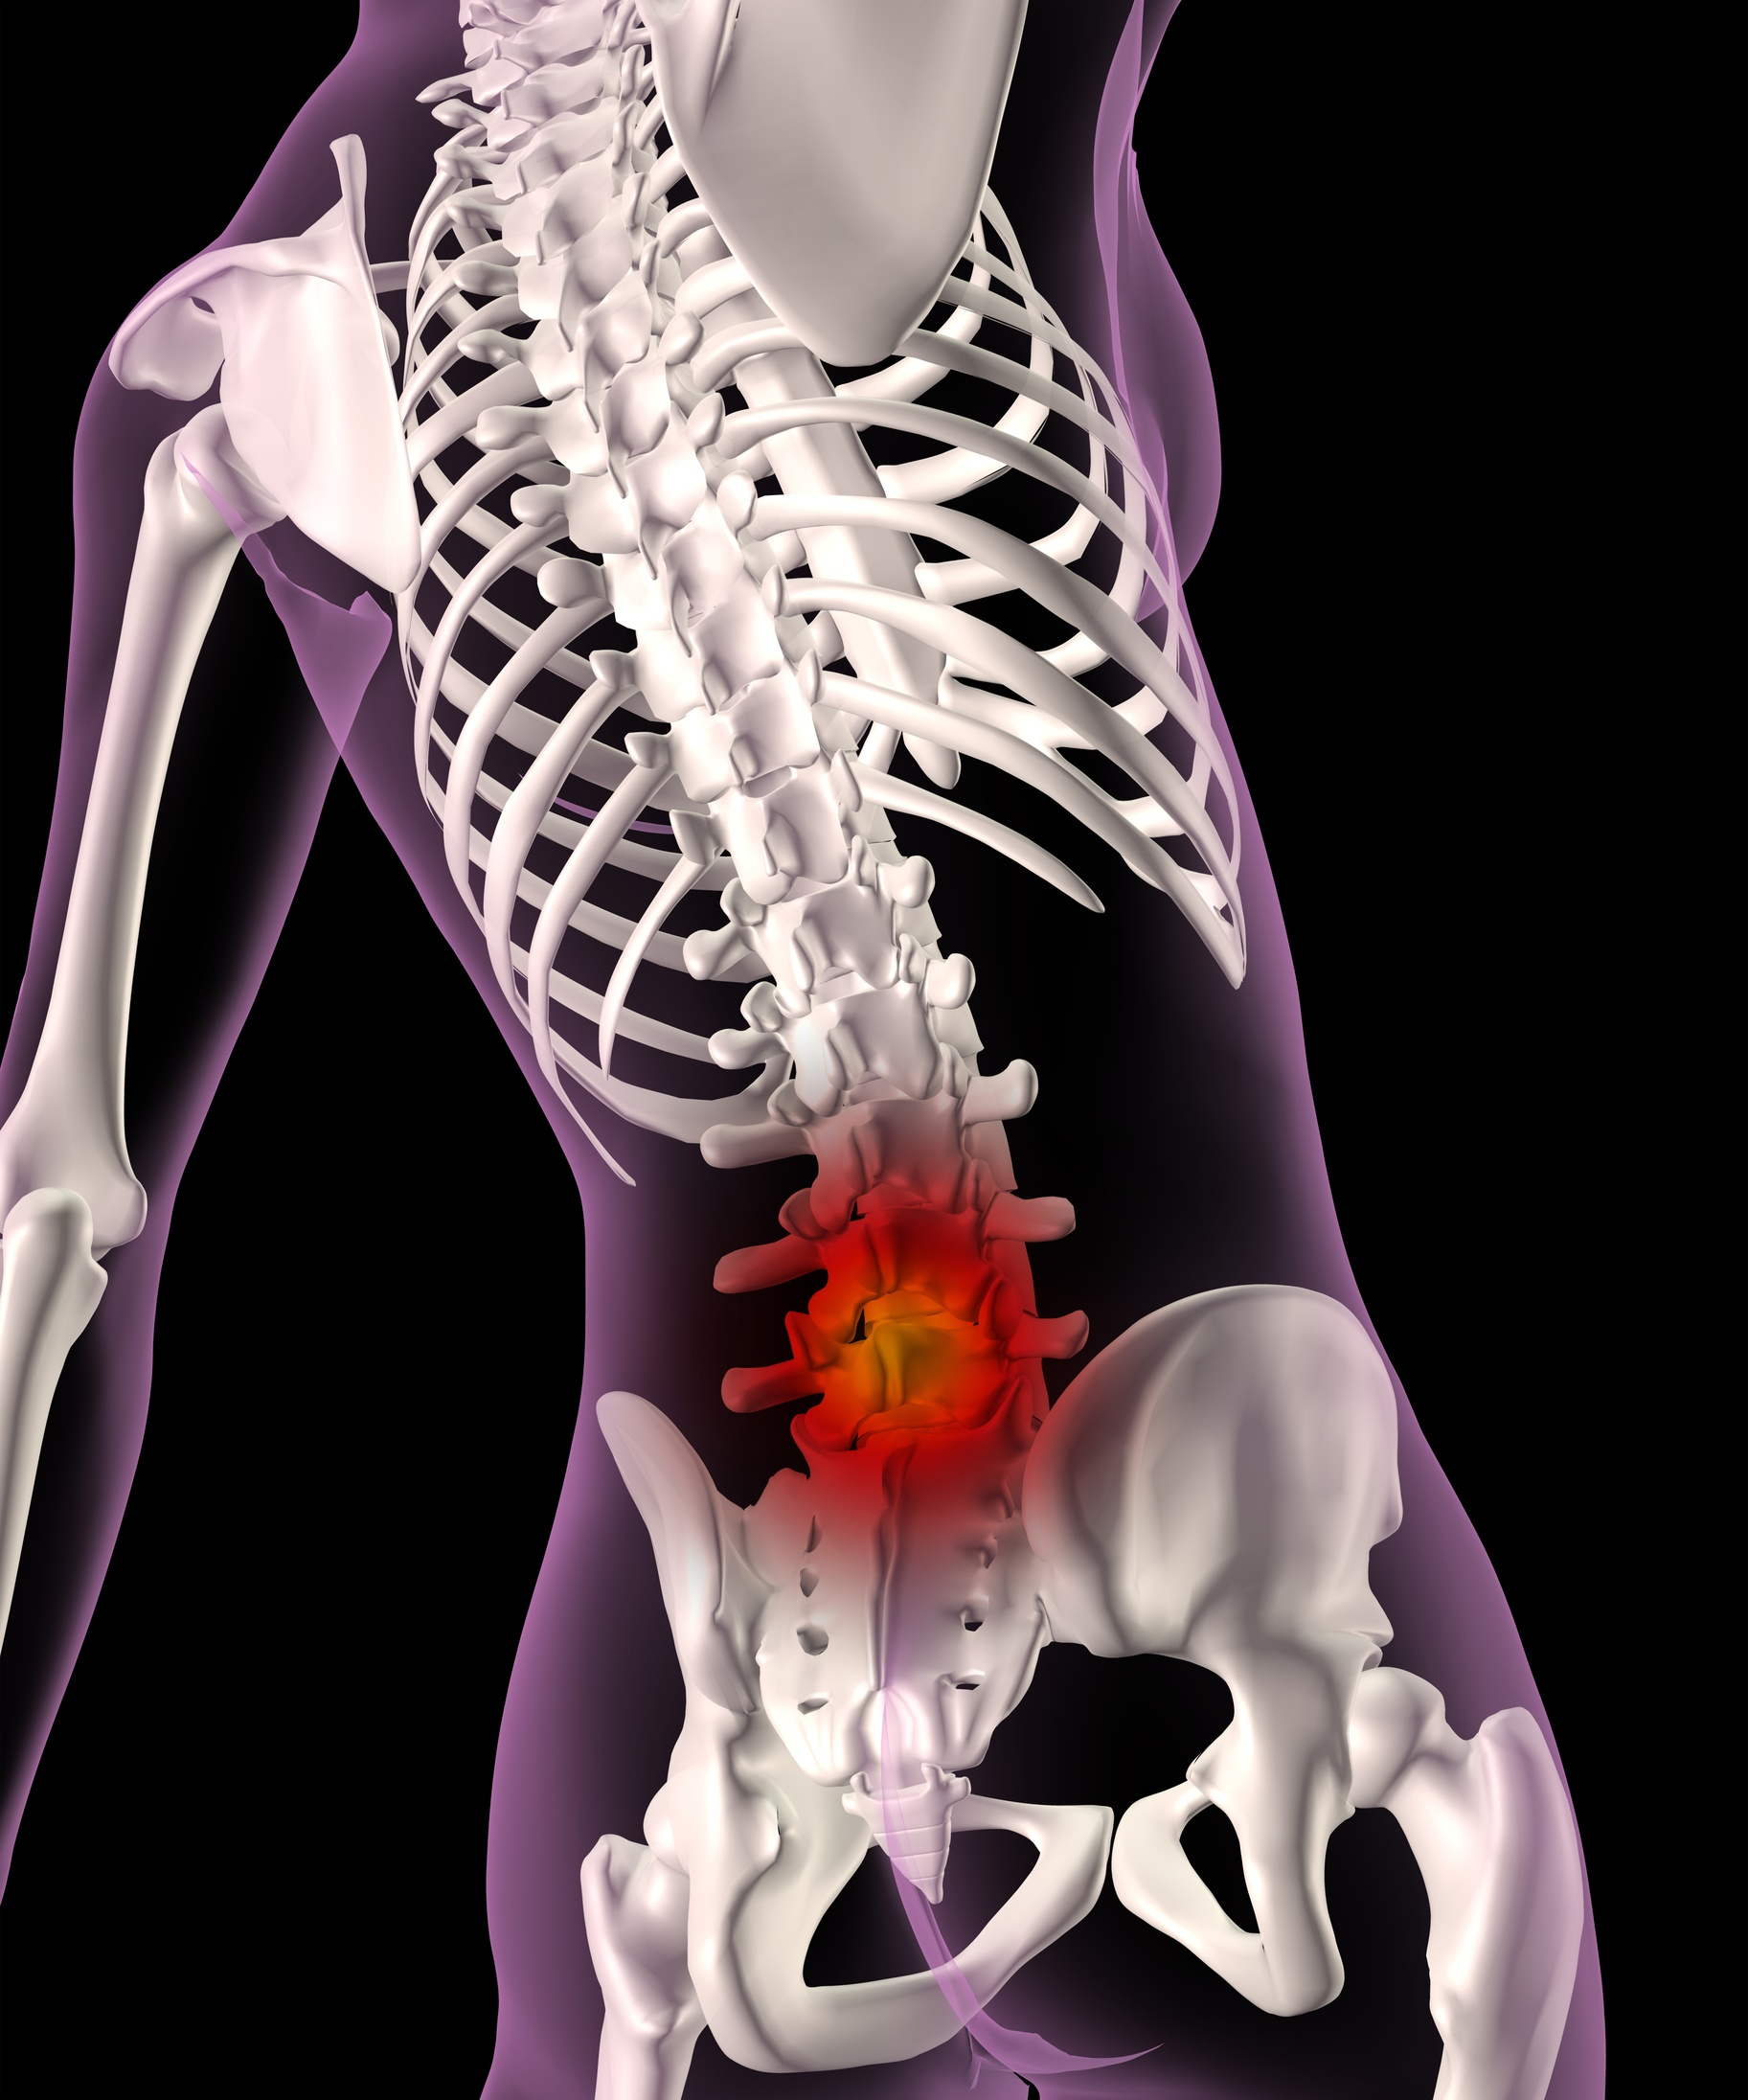 Human spine, ribs and lower back pain